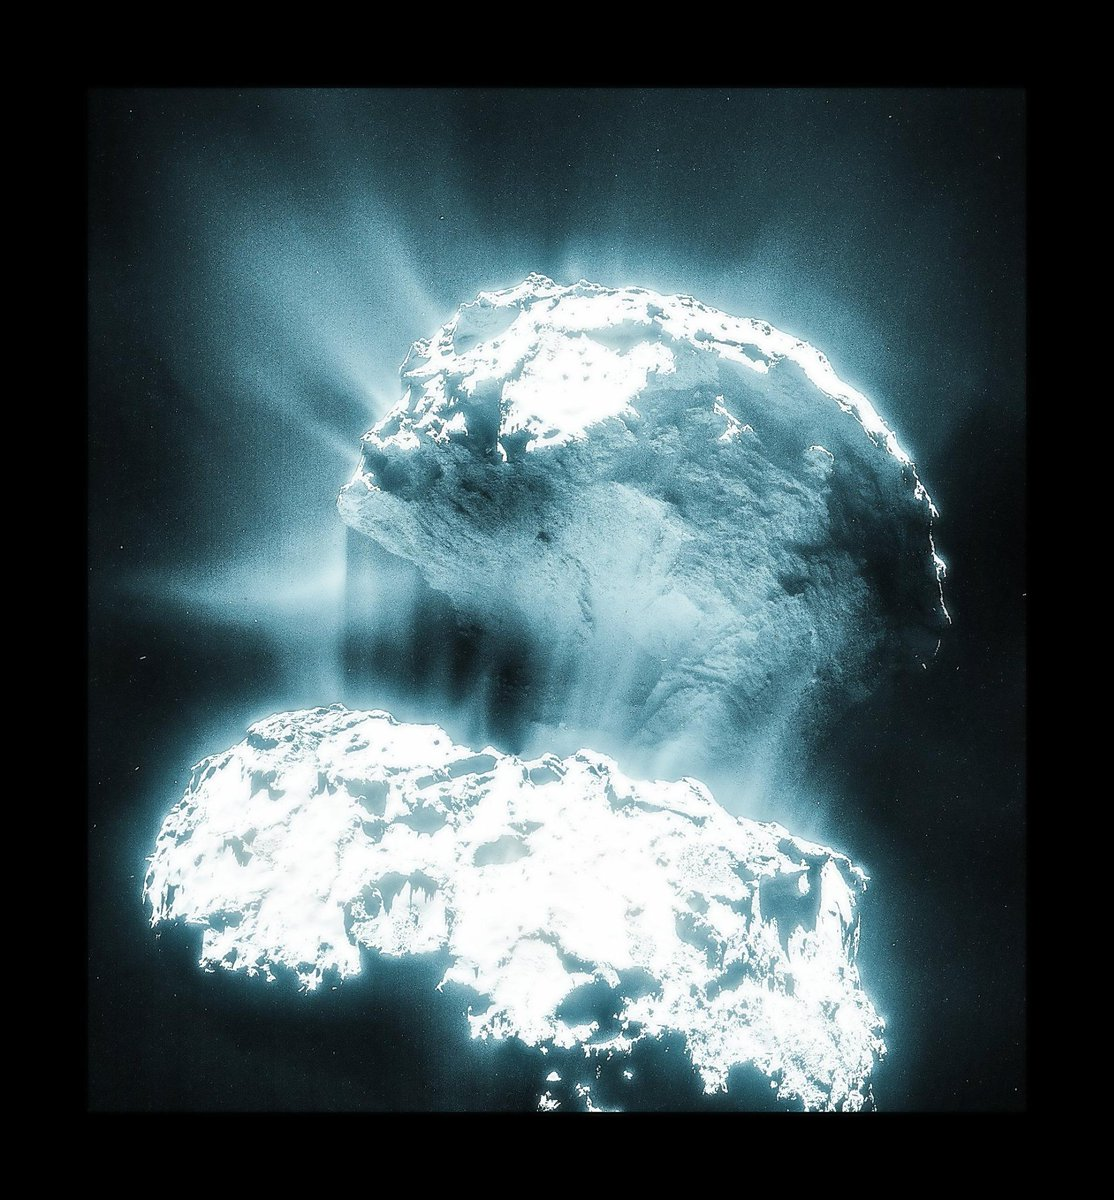 Woah! RT @mars_stu: Comet 67P bursting into life as it nears the Sun... THANK YOU @ESA_Rosetta navcam team! http://t.co/ZIOO8RwJc5